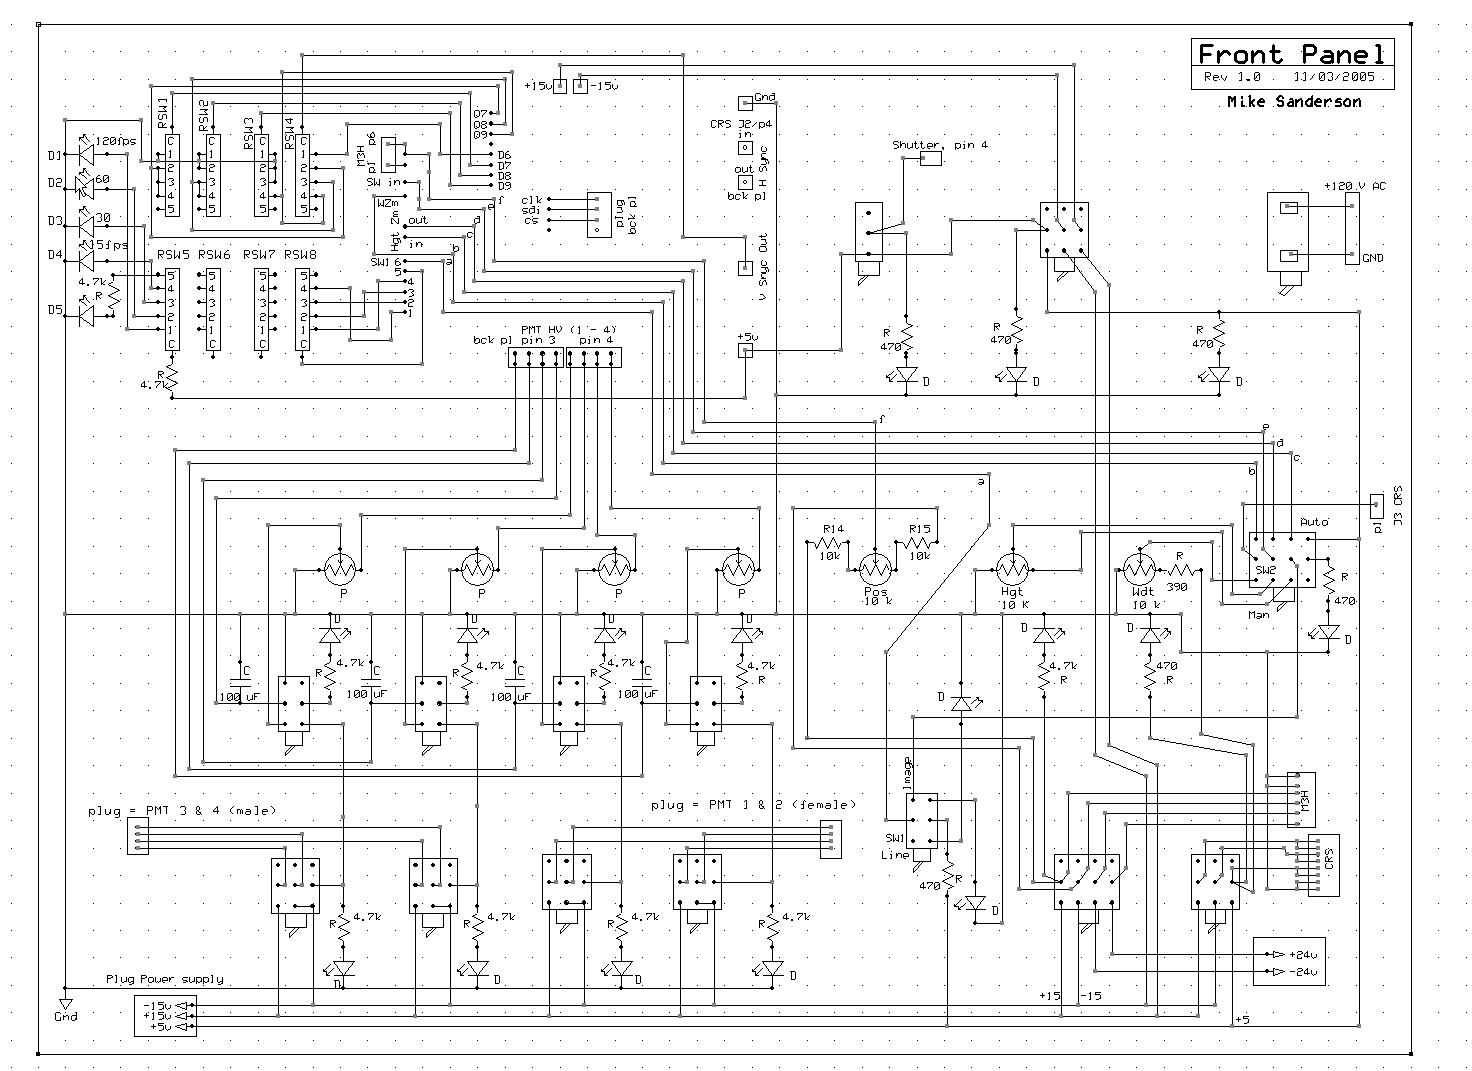 switch panel wiring diagram 2002 nissan frontier audio onan genset free engine image for